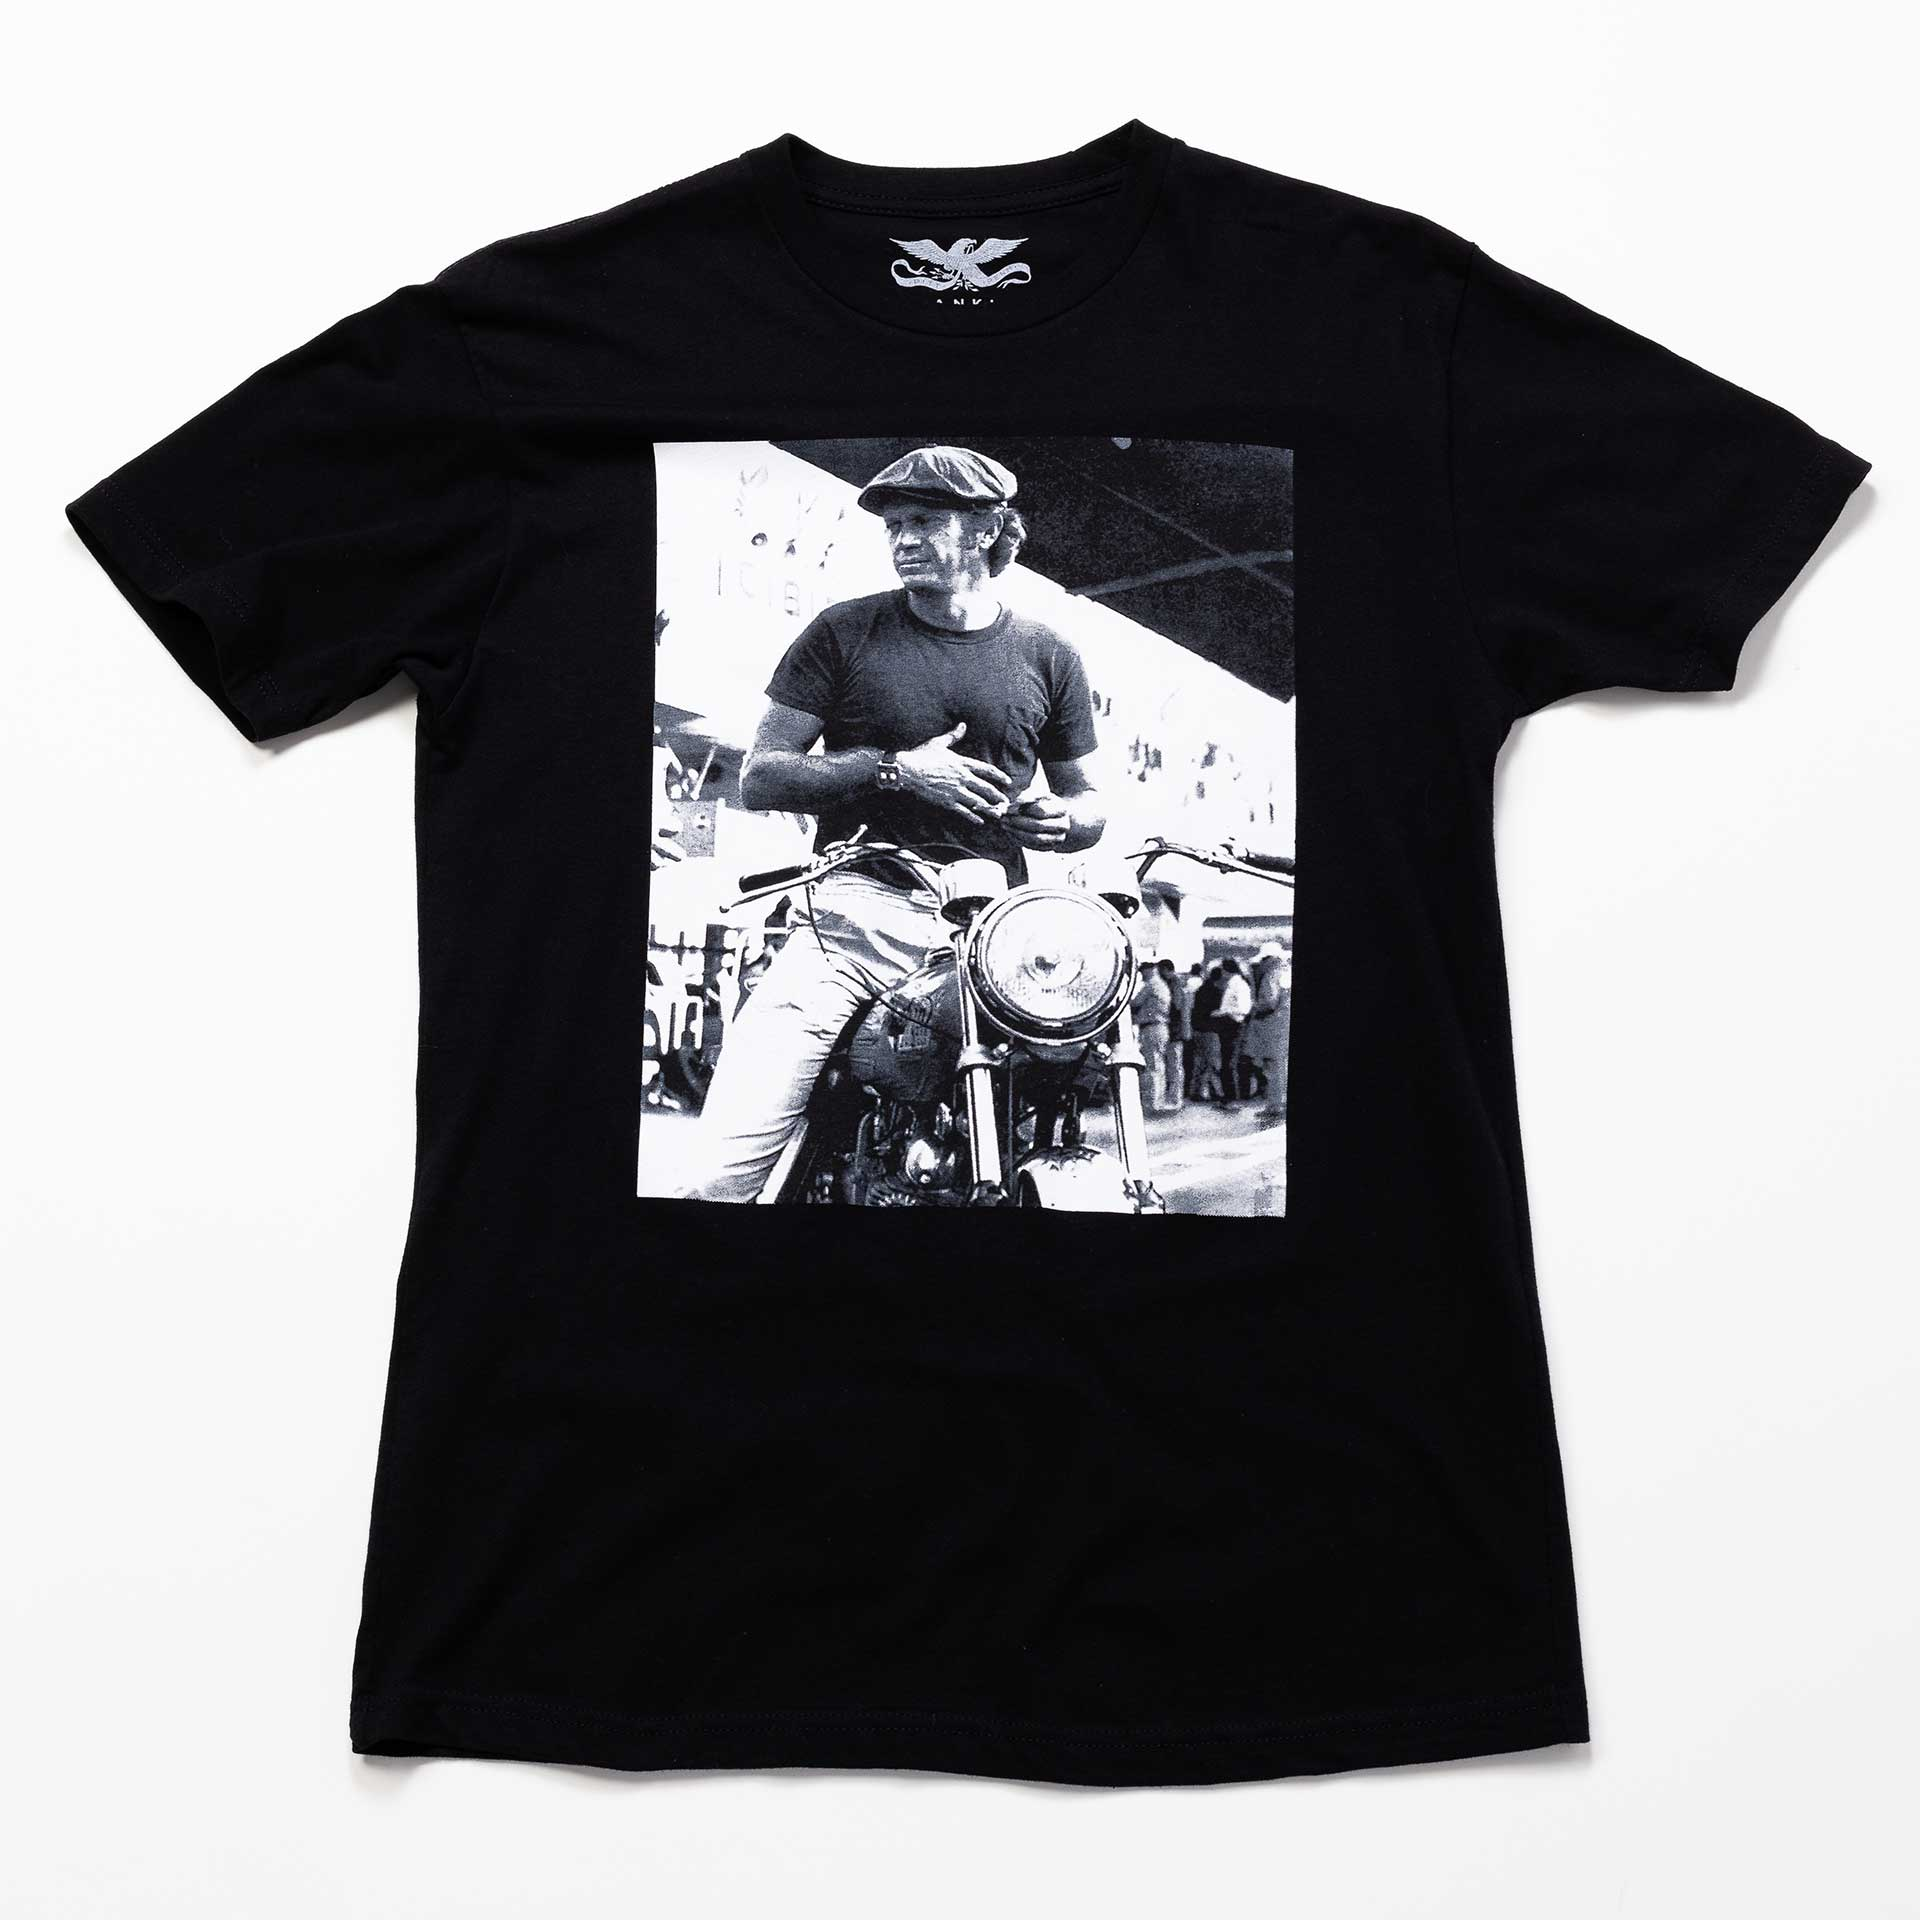 Franklin-&-Mercer-Collection-Tees-Motorcycle